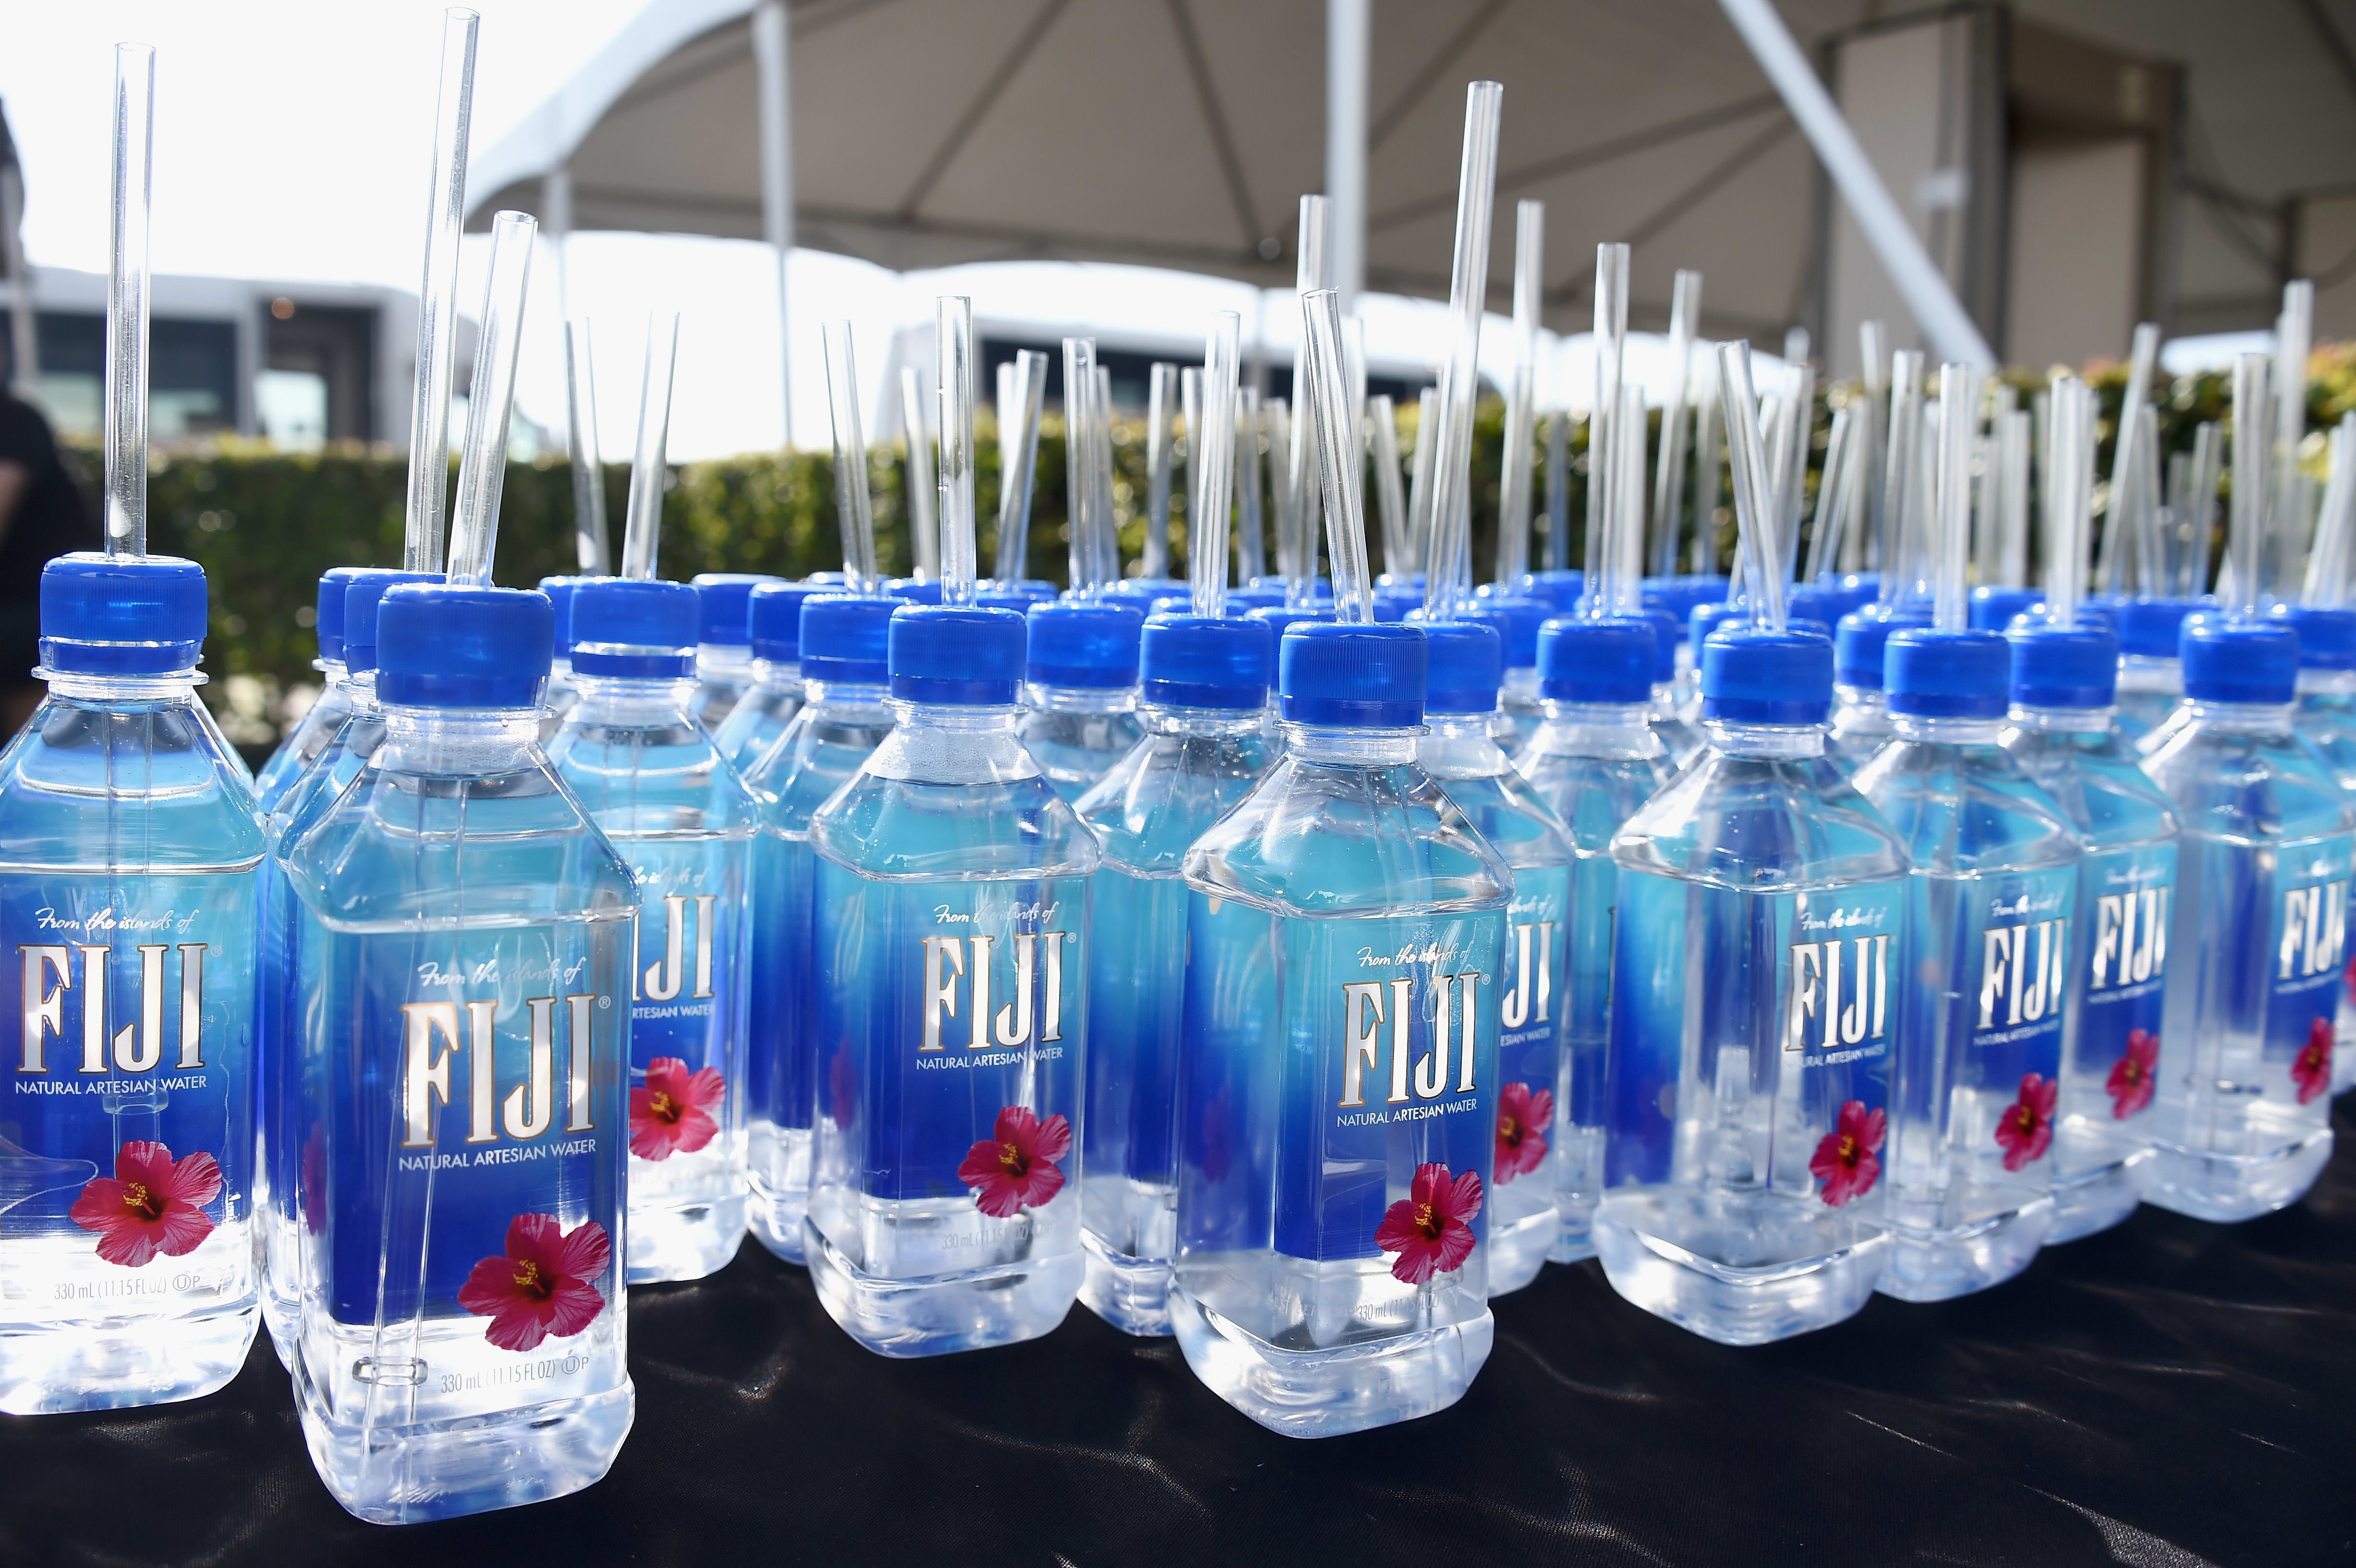 Picture showing bottles of Fiji water